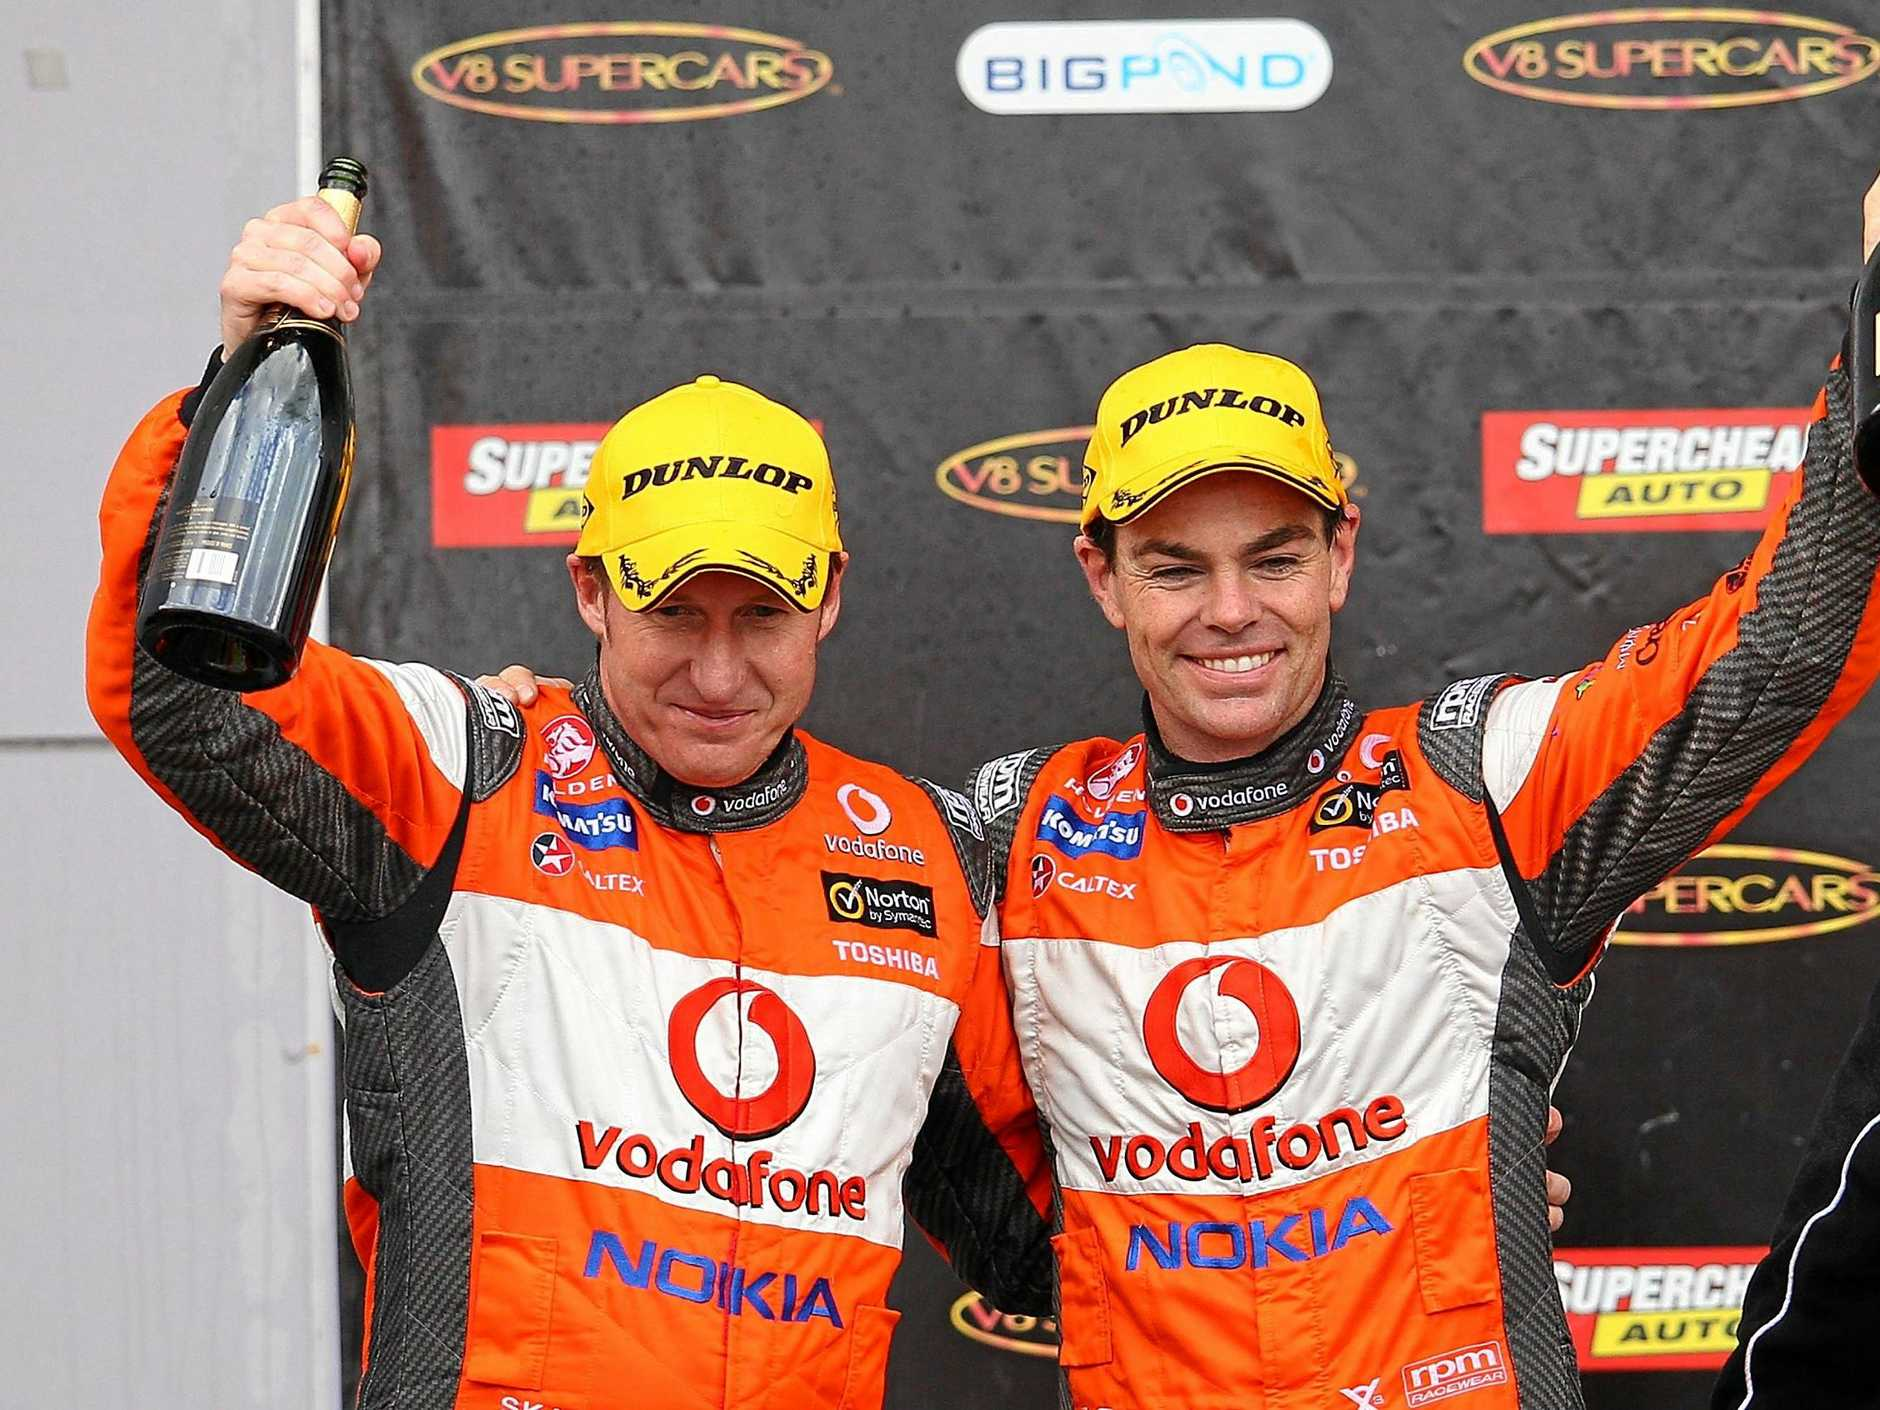 Skaife and Craig Lowndes  celebrate on the podium after finishing second in the 2011 Bathurst 1000